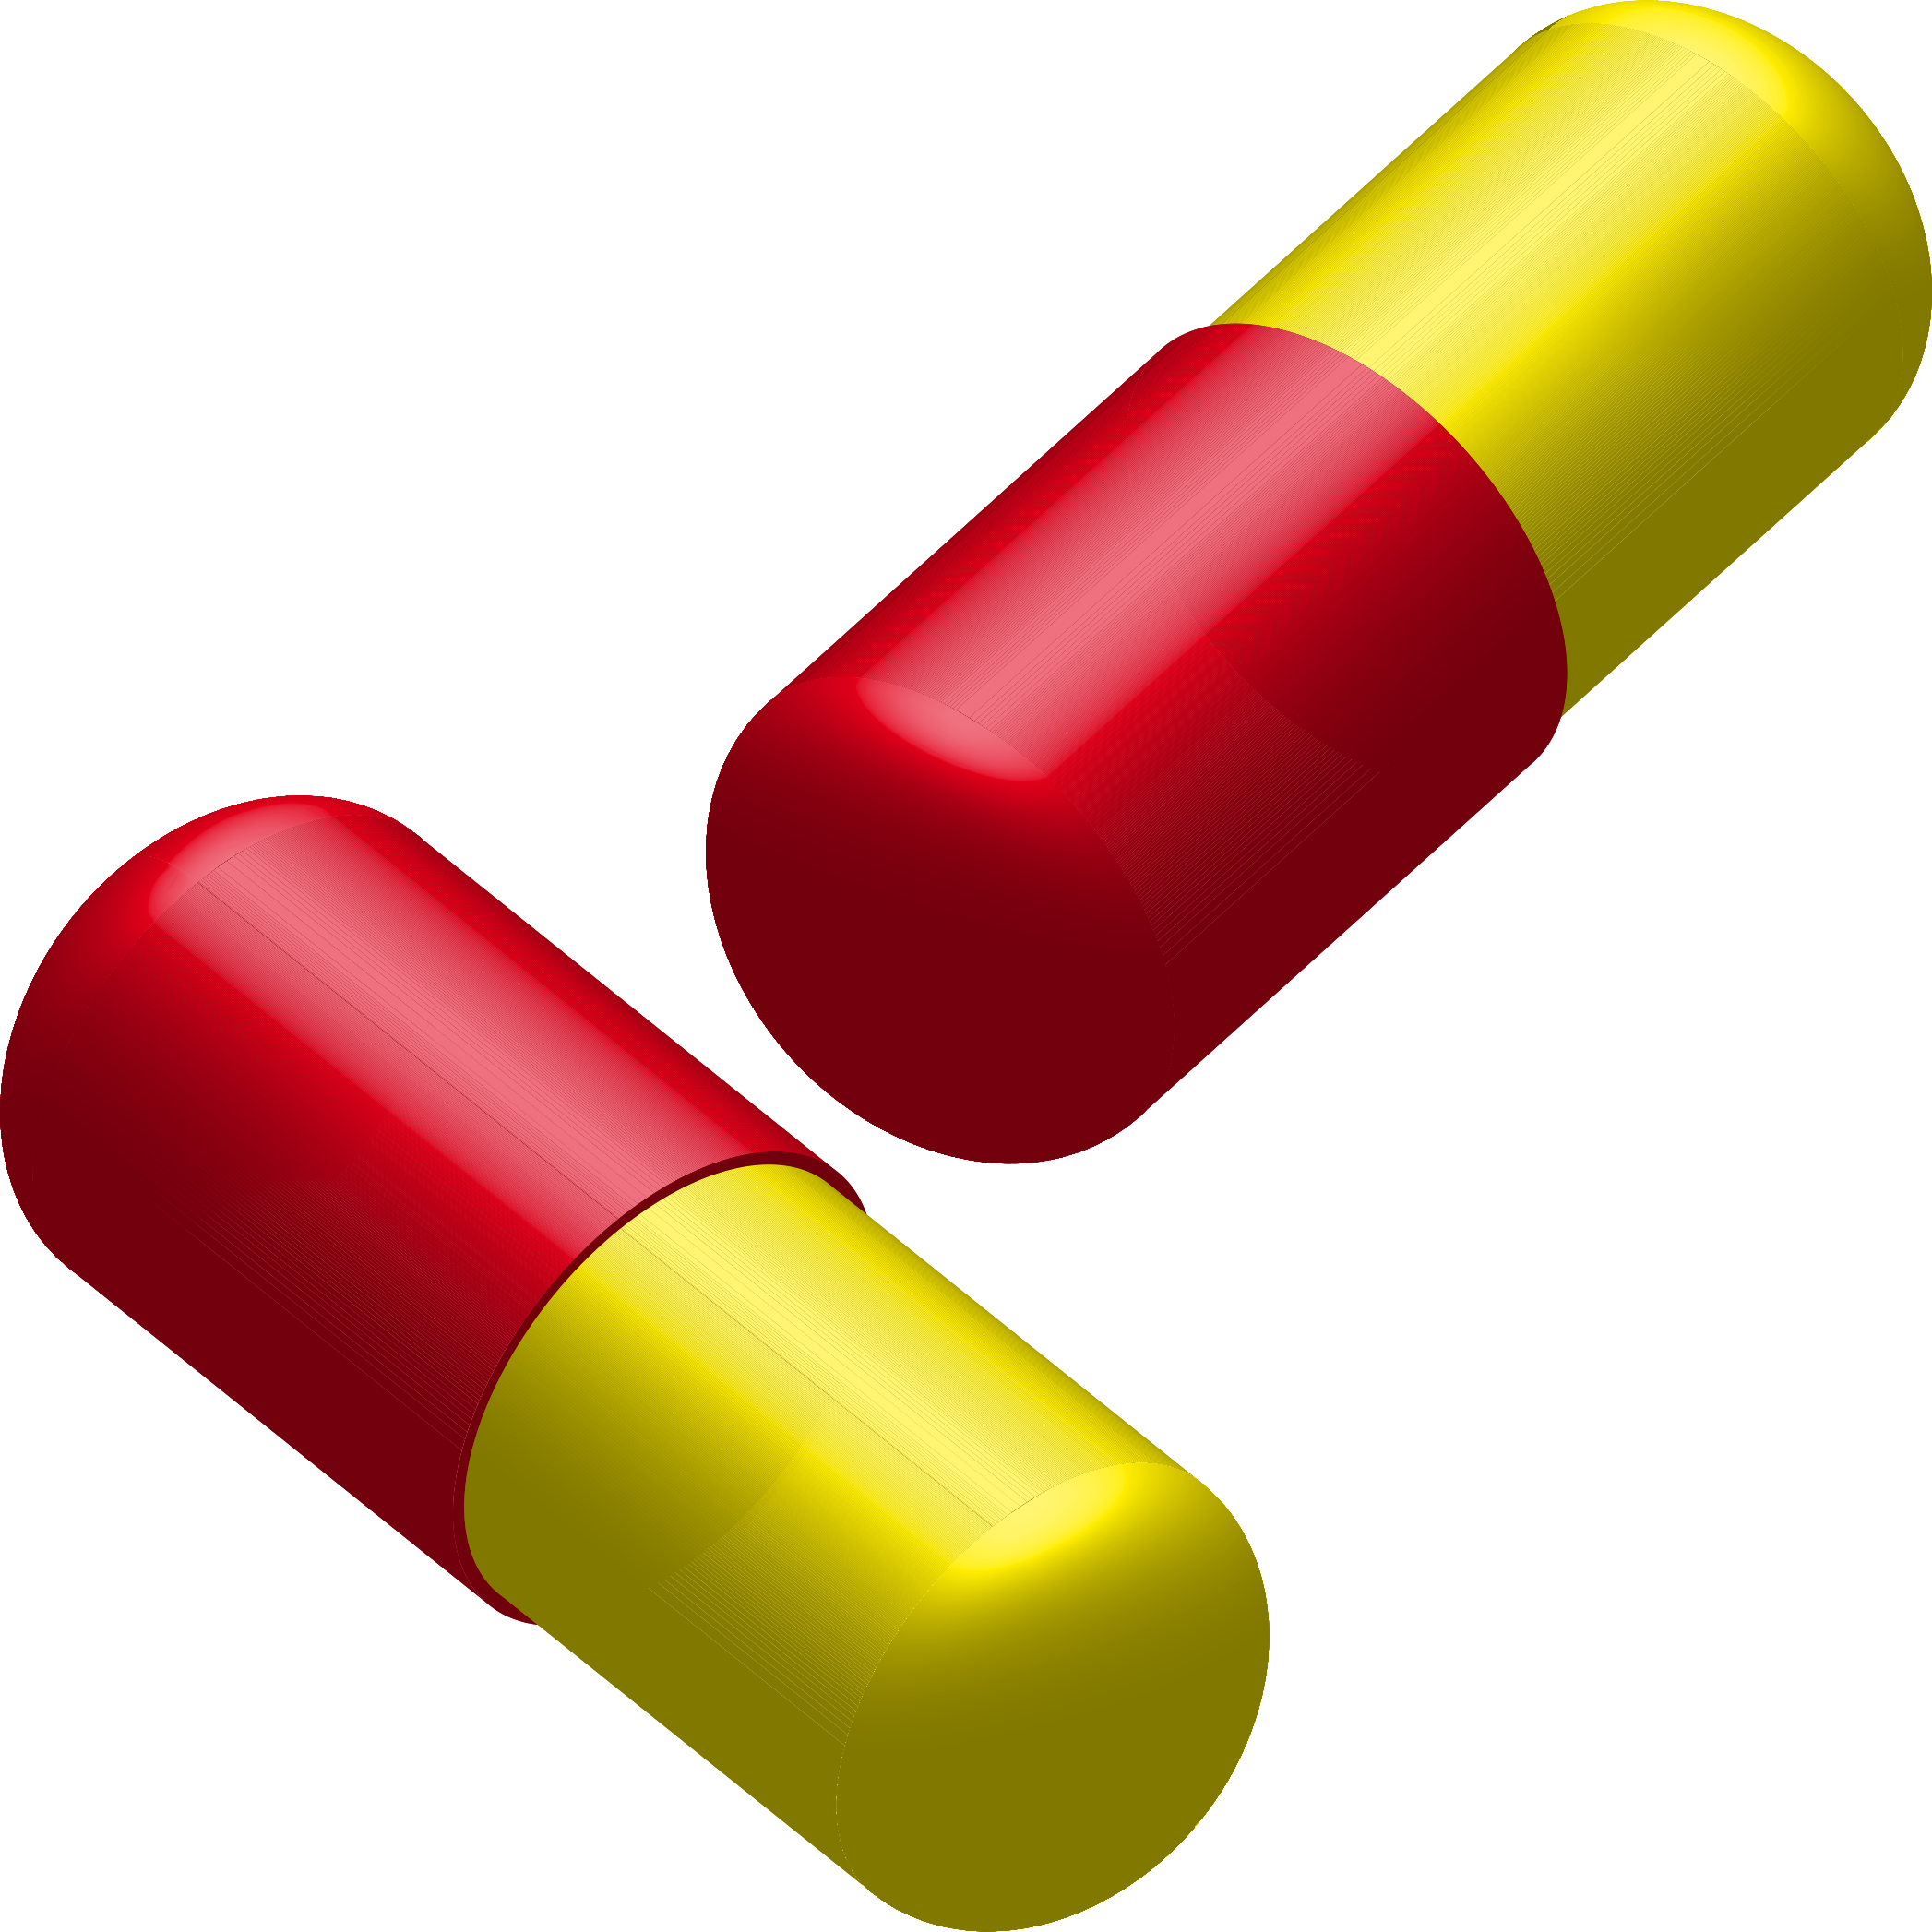 Clipart - Two capsules